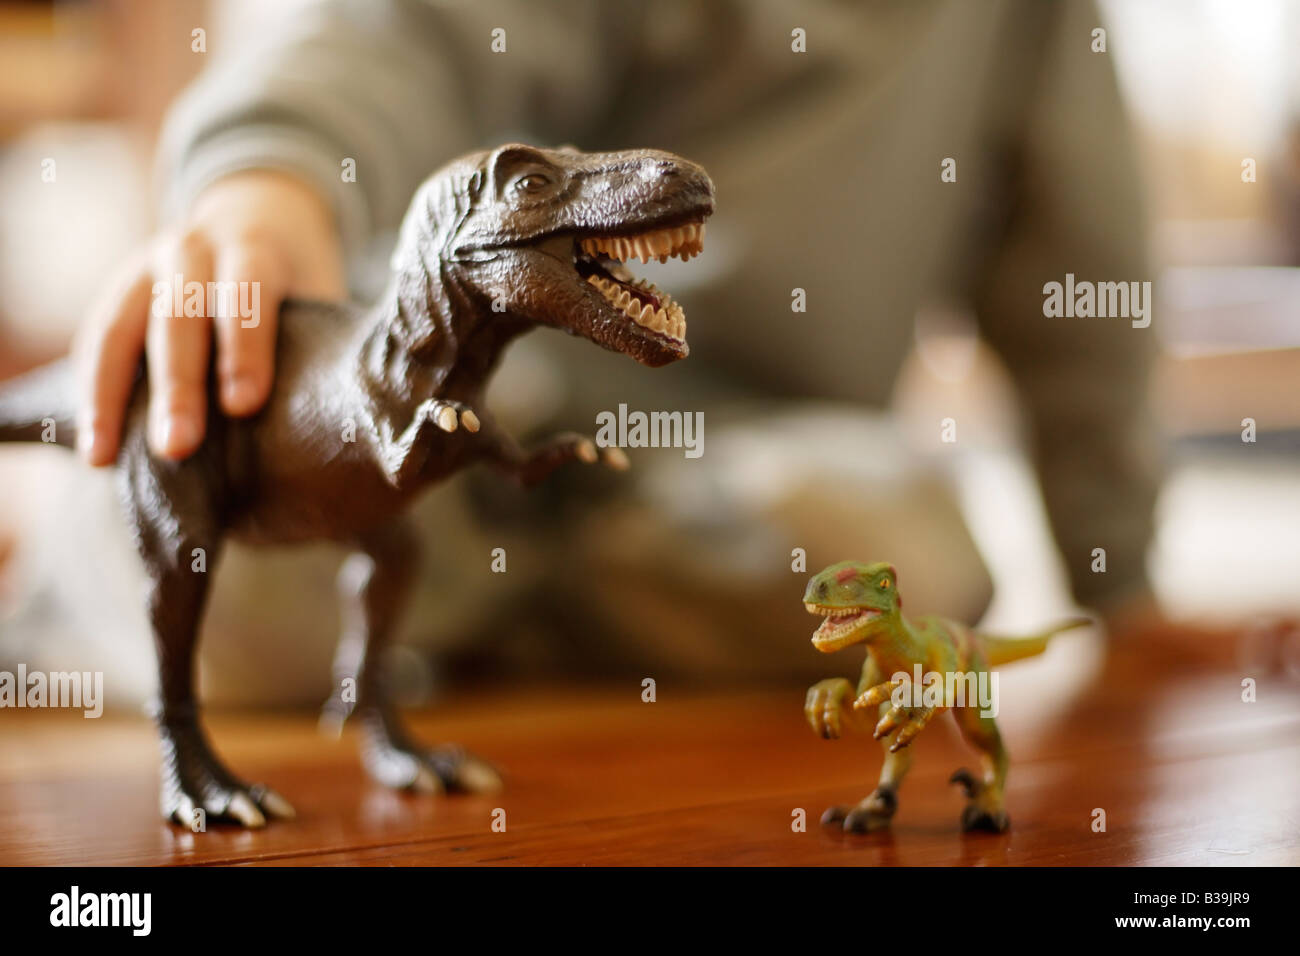 Model Tyrannosaurus rex in hands of six year old boy eating another toy dinosaur a Velociraptor - Stock Image